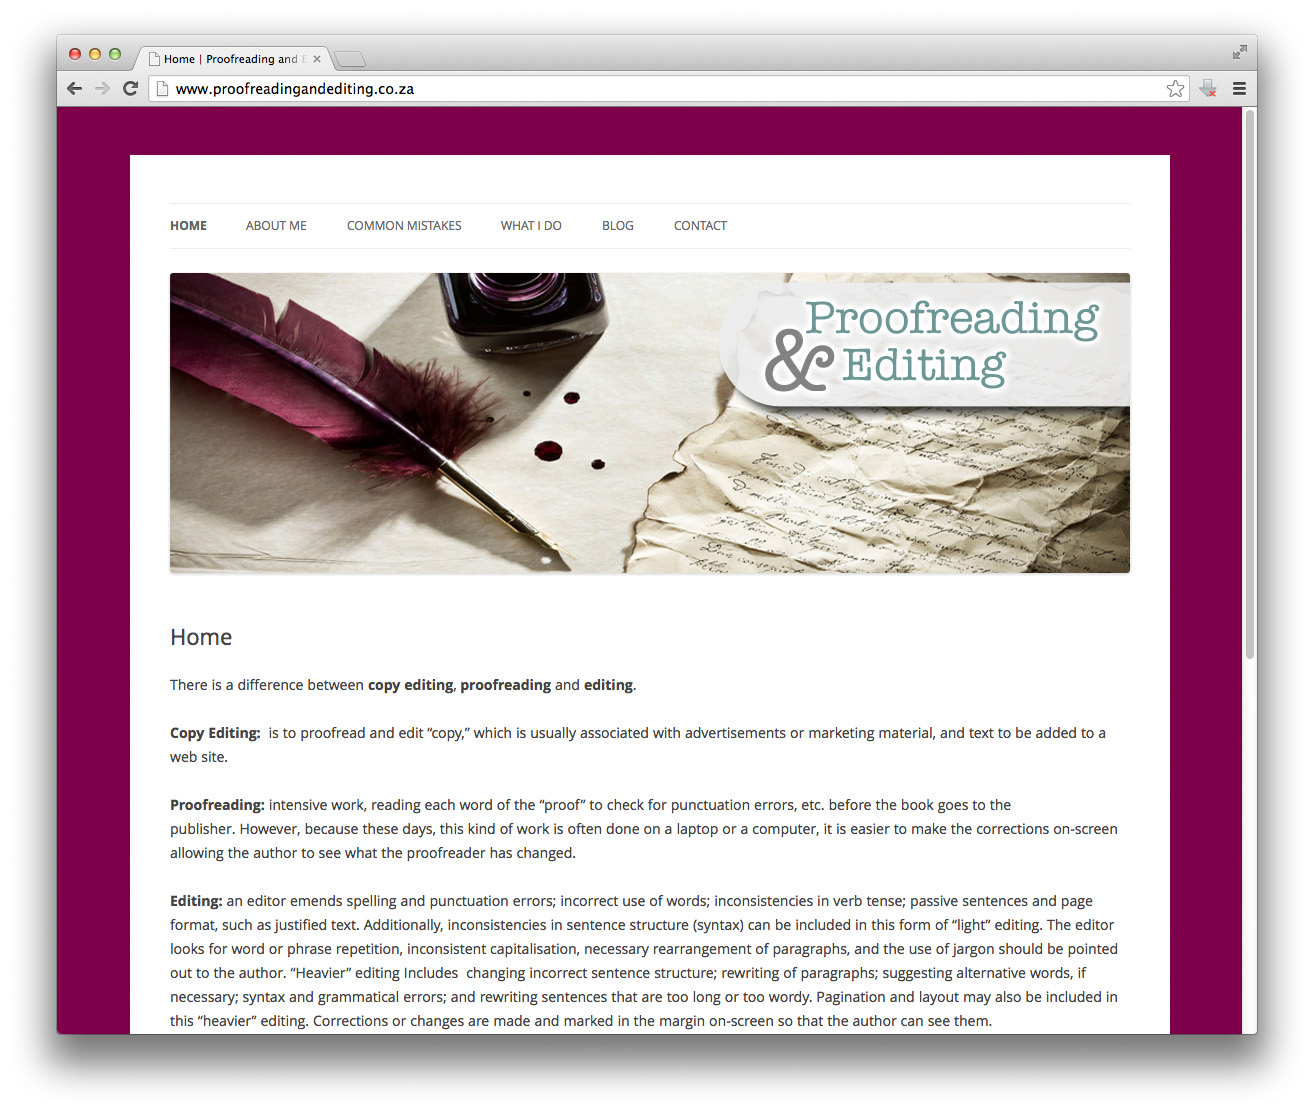 English In Italian: Website: Proofreading And Editing